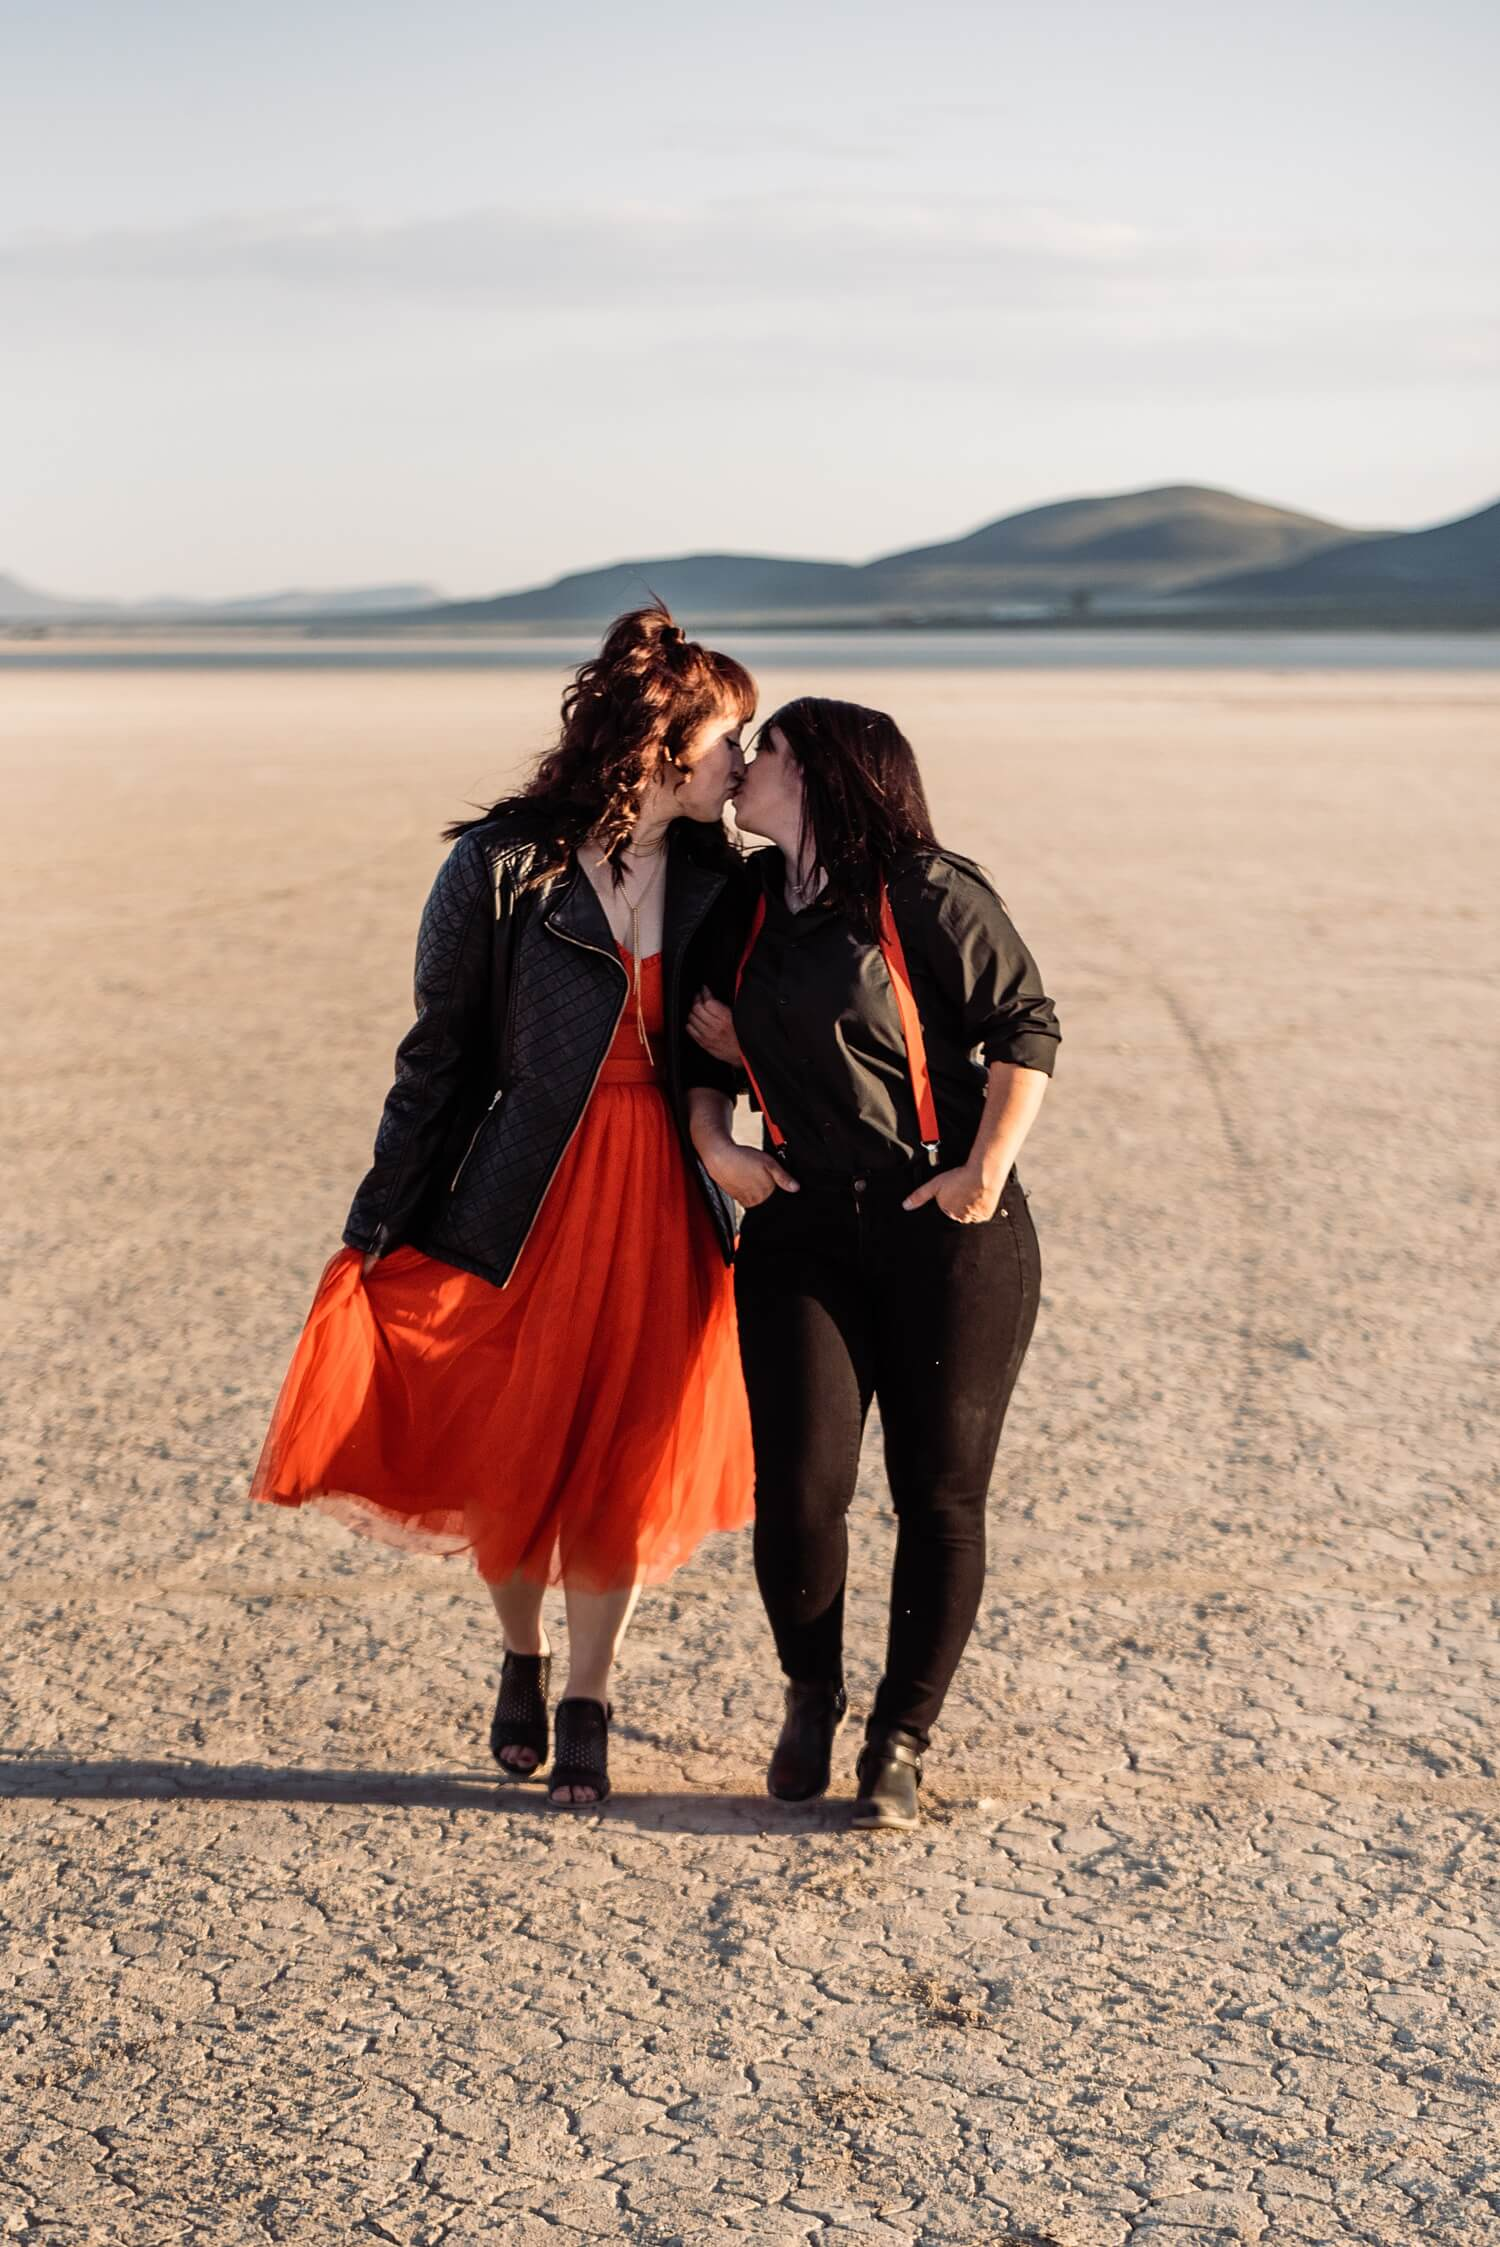 adventure elopement photographer,adventure session,alvord desert,couples session,desert,engagement session,oregon,pacific northwest,playa,southeastern oregon,